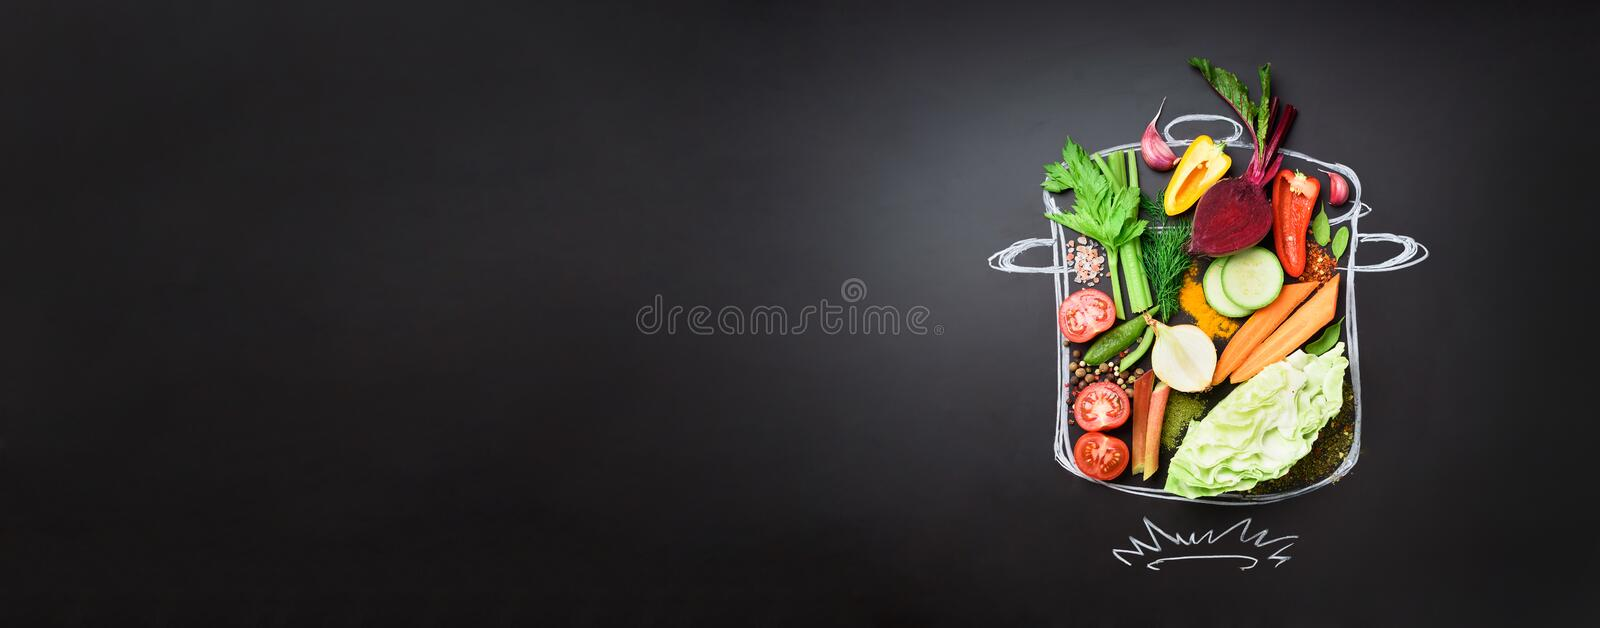 Food ingredients for blending creamy soup on painted stewpan over black chalkboard. Top view with copy space. Organic royalty free stock photos